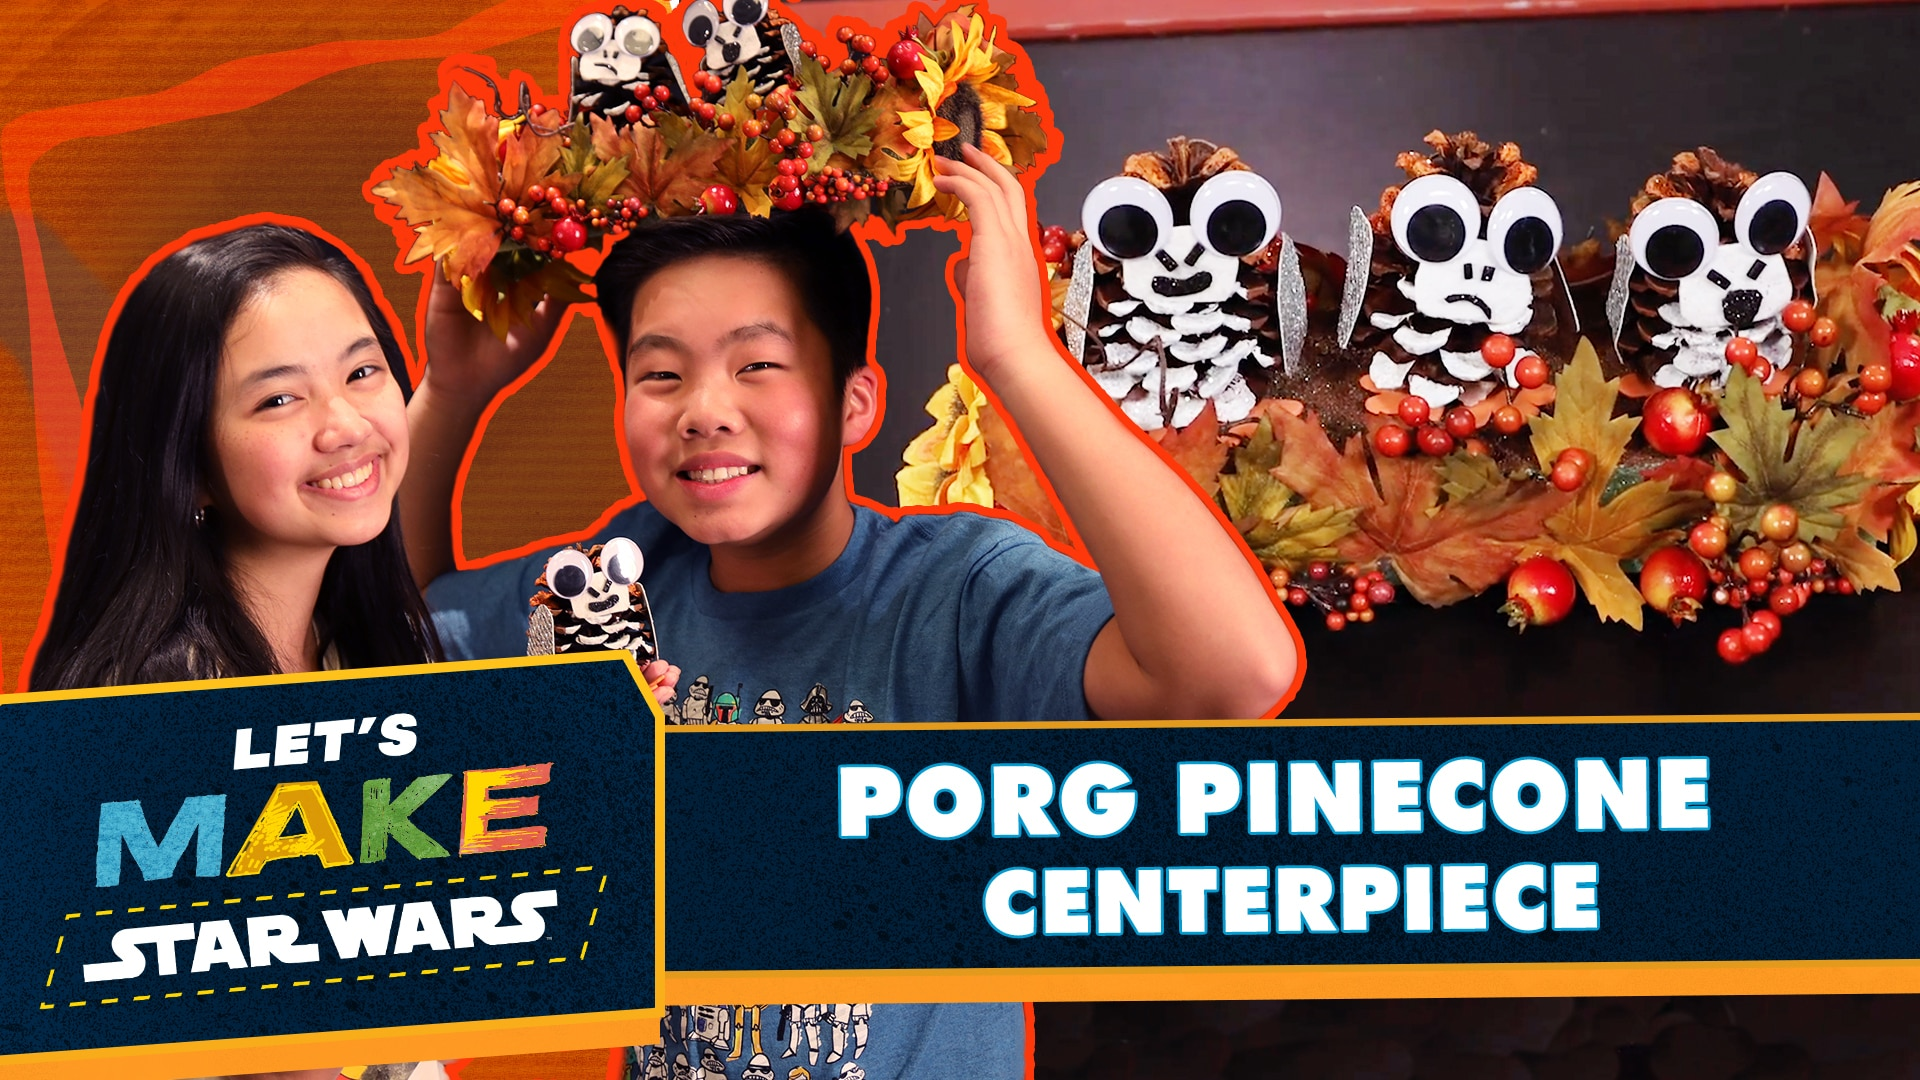 Let's Make Star Wars - How to Make a Porg Pinecone Centerpiece